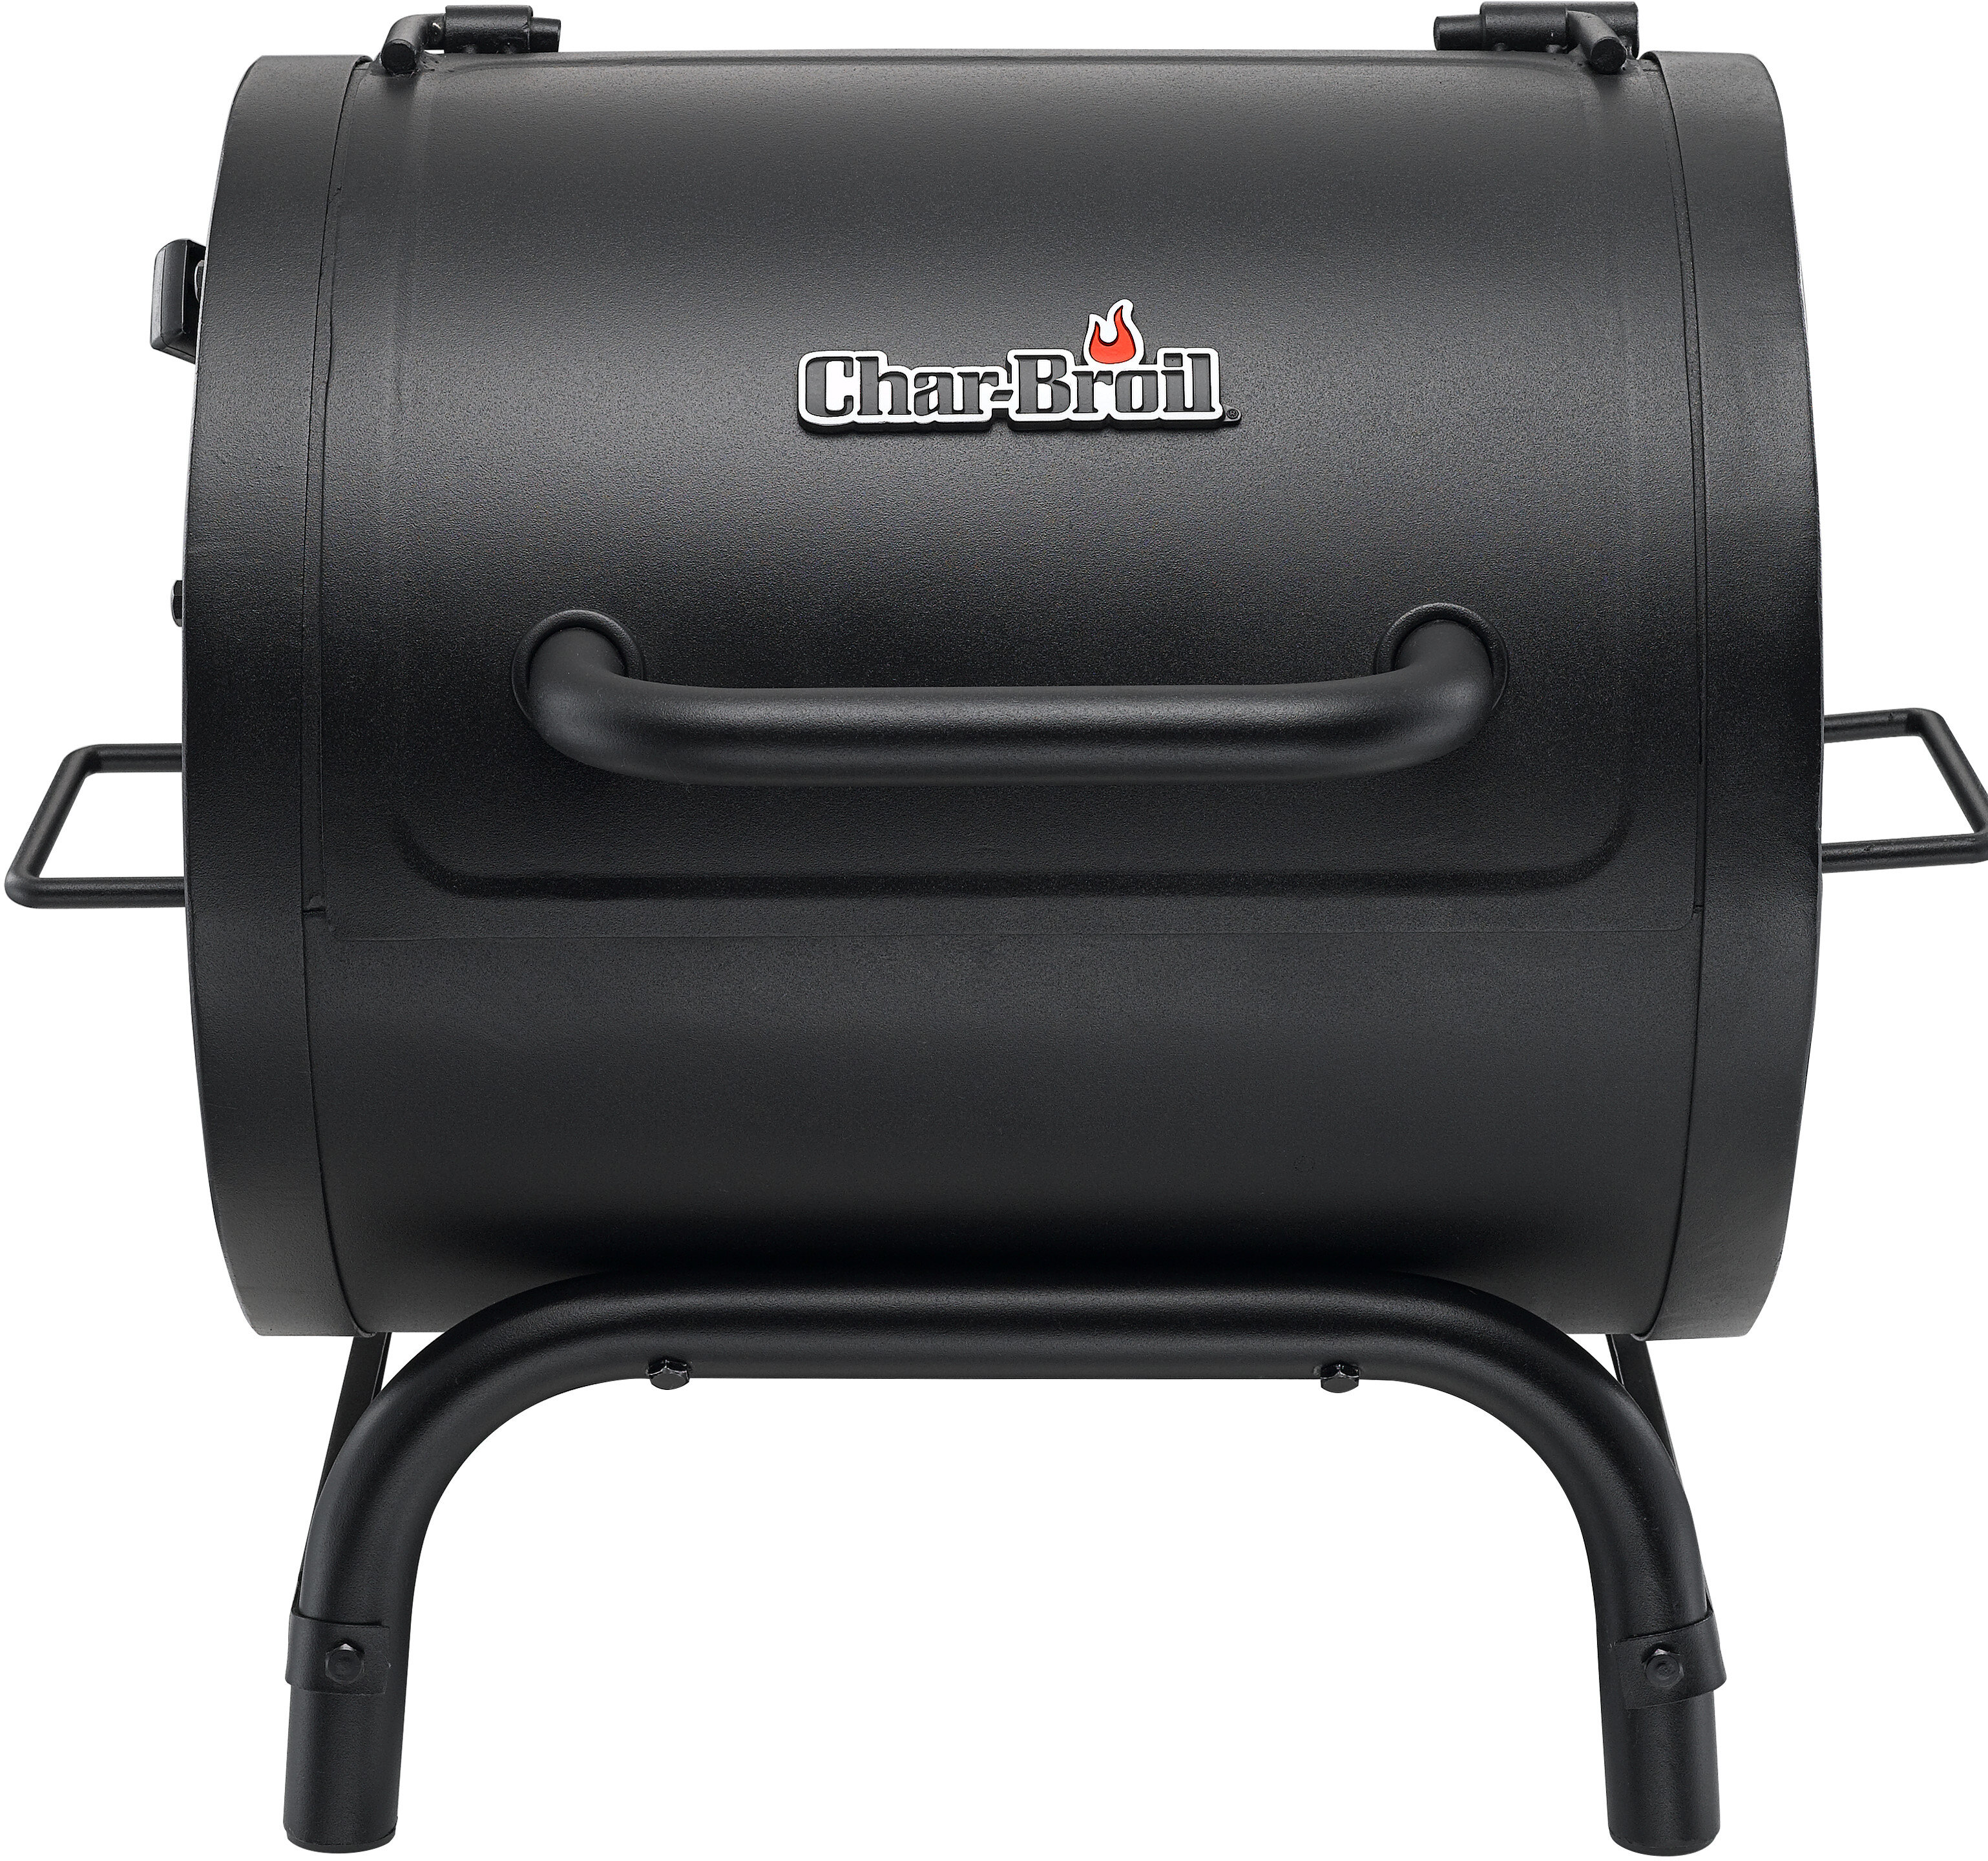 Charbroil American Gourmet Portable Tabletop Charcoal Grill Reviews Wayfair